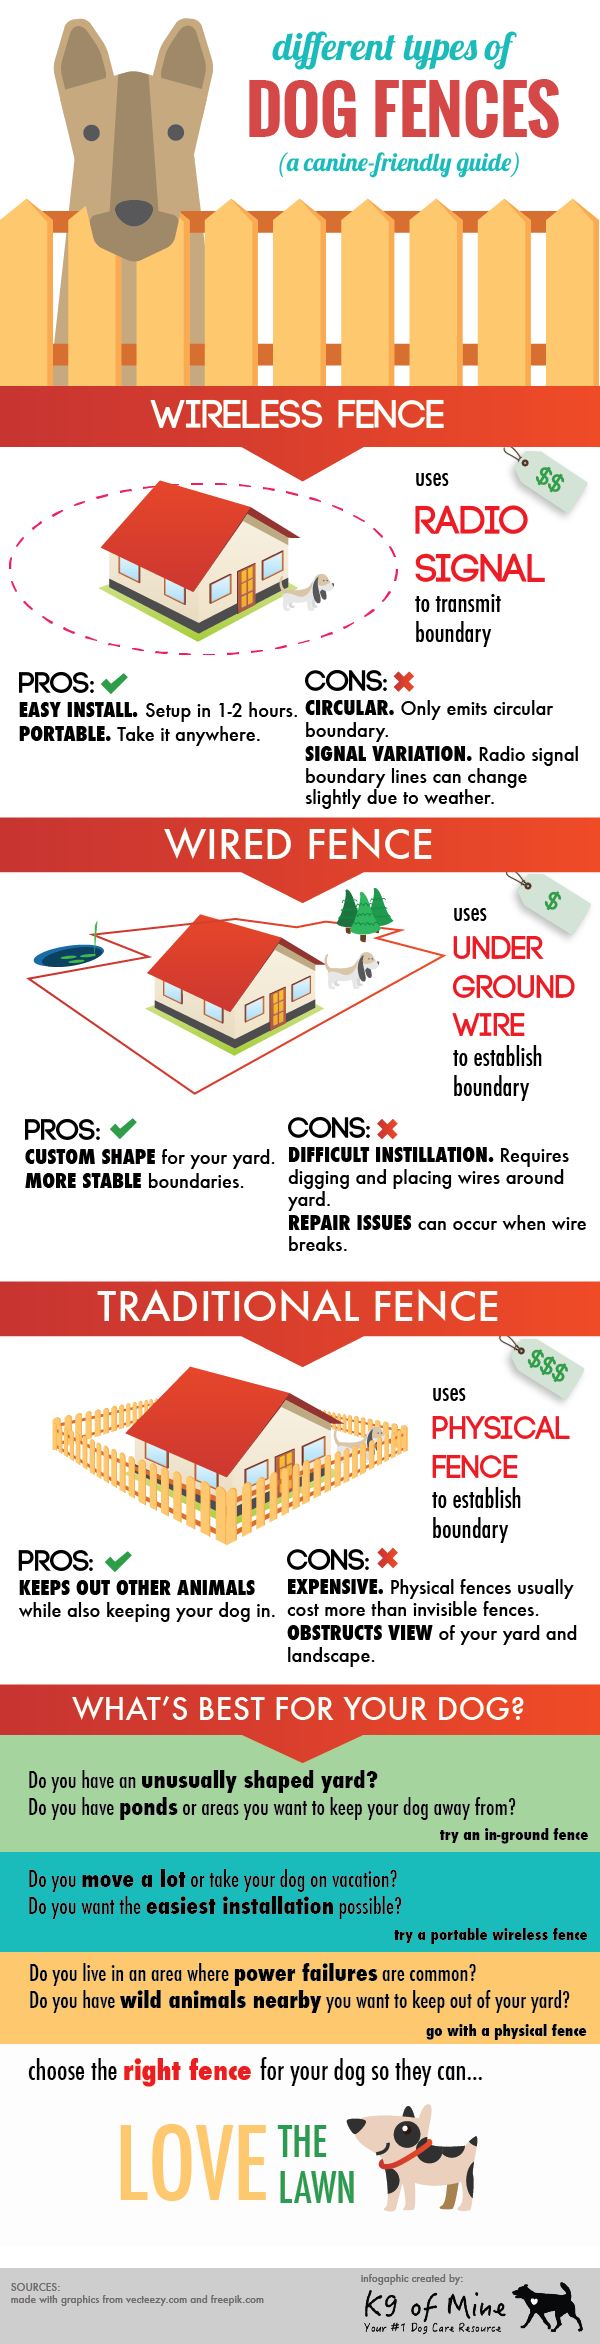 Types of Dog Fences 101 Guide